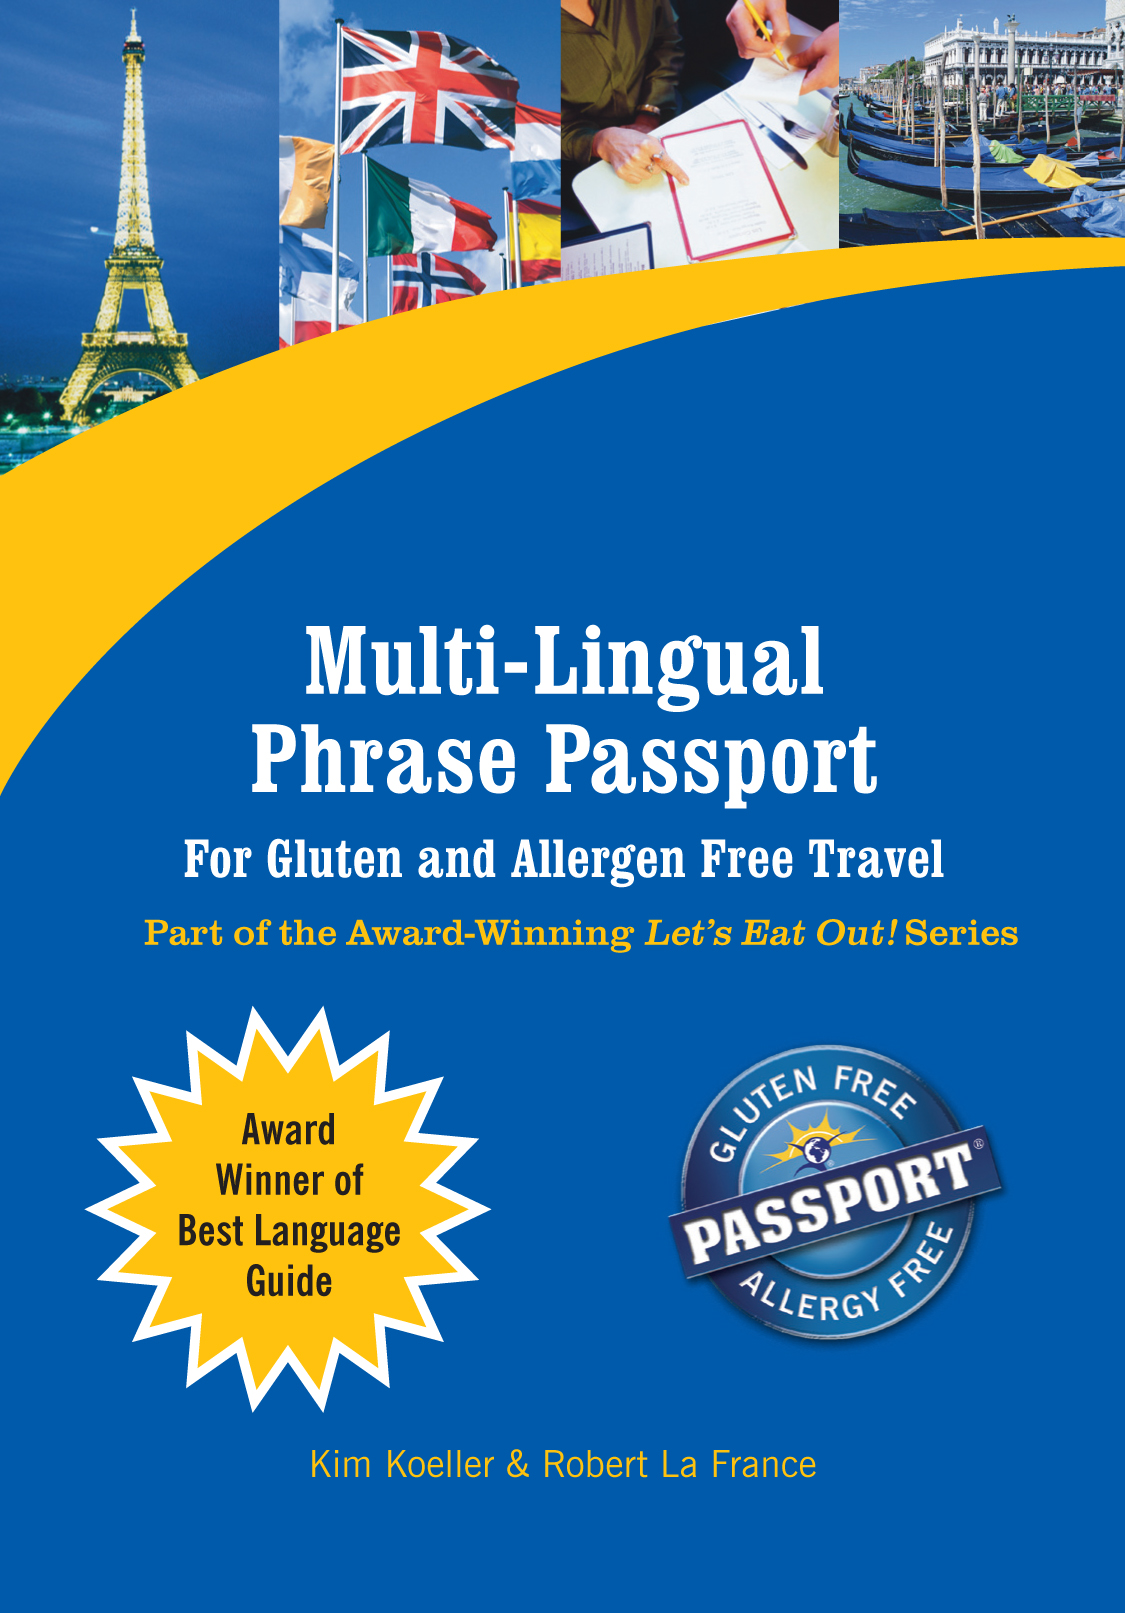 Multi-Lingual Phrase Passport for Gluten and Allergen Free Travel